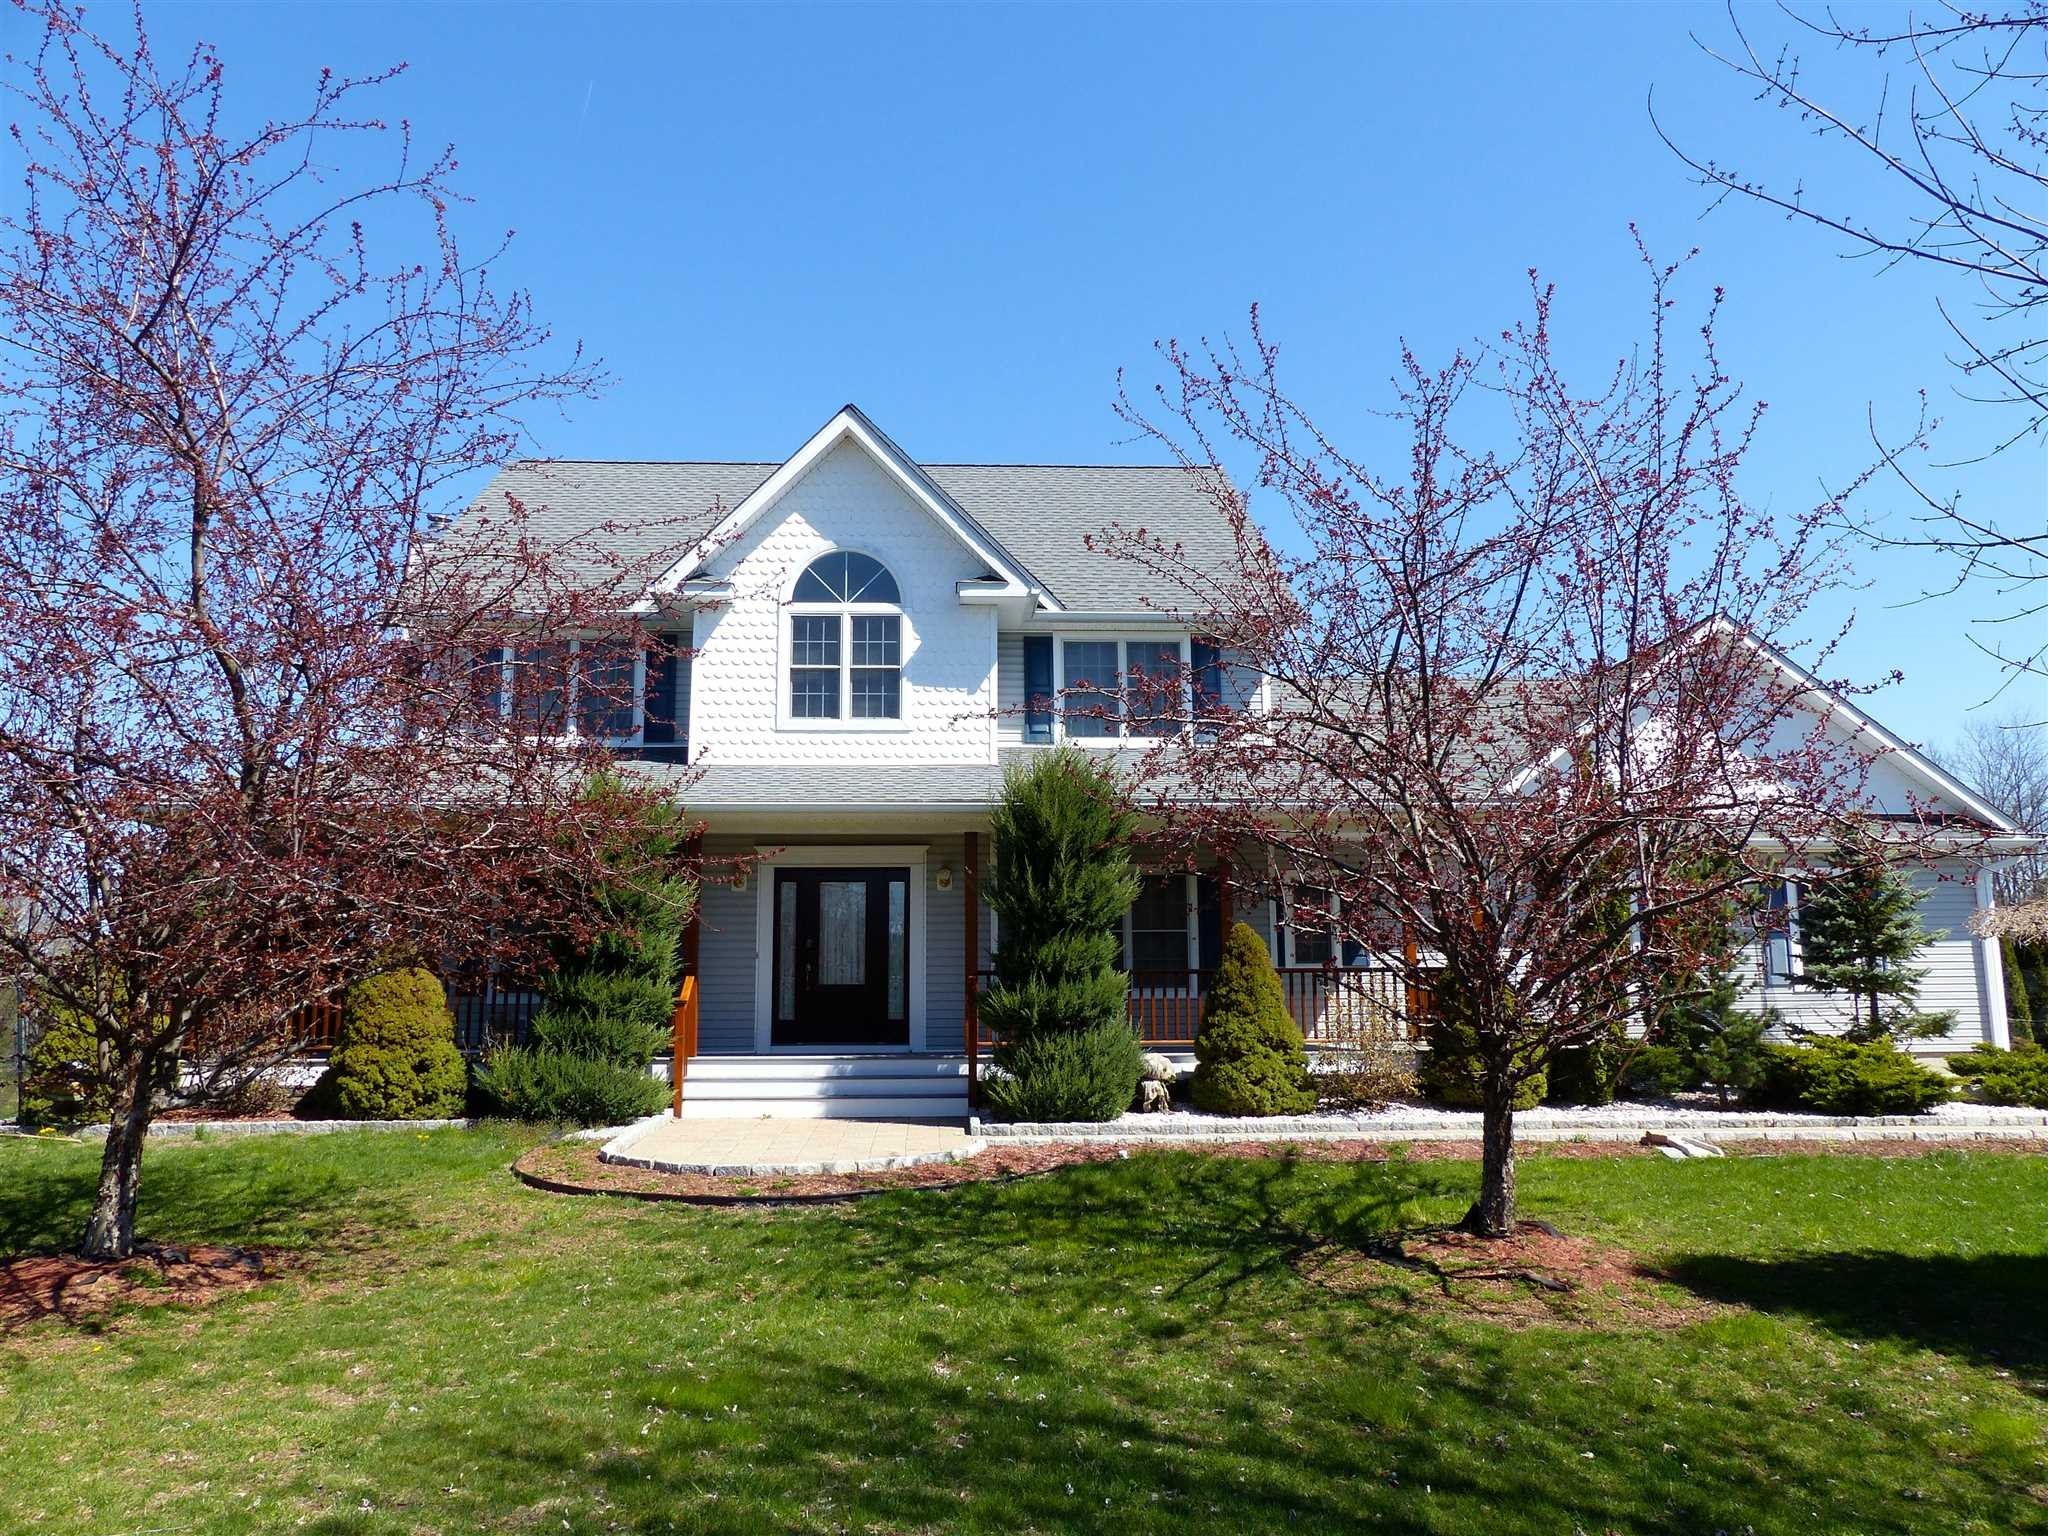 Single Family Home for Sale at 245 ROUTE 199 245 ROUTE 199 Red Hook, New York 12571 United States